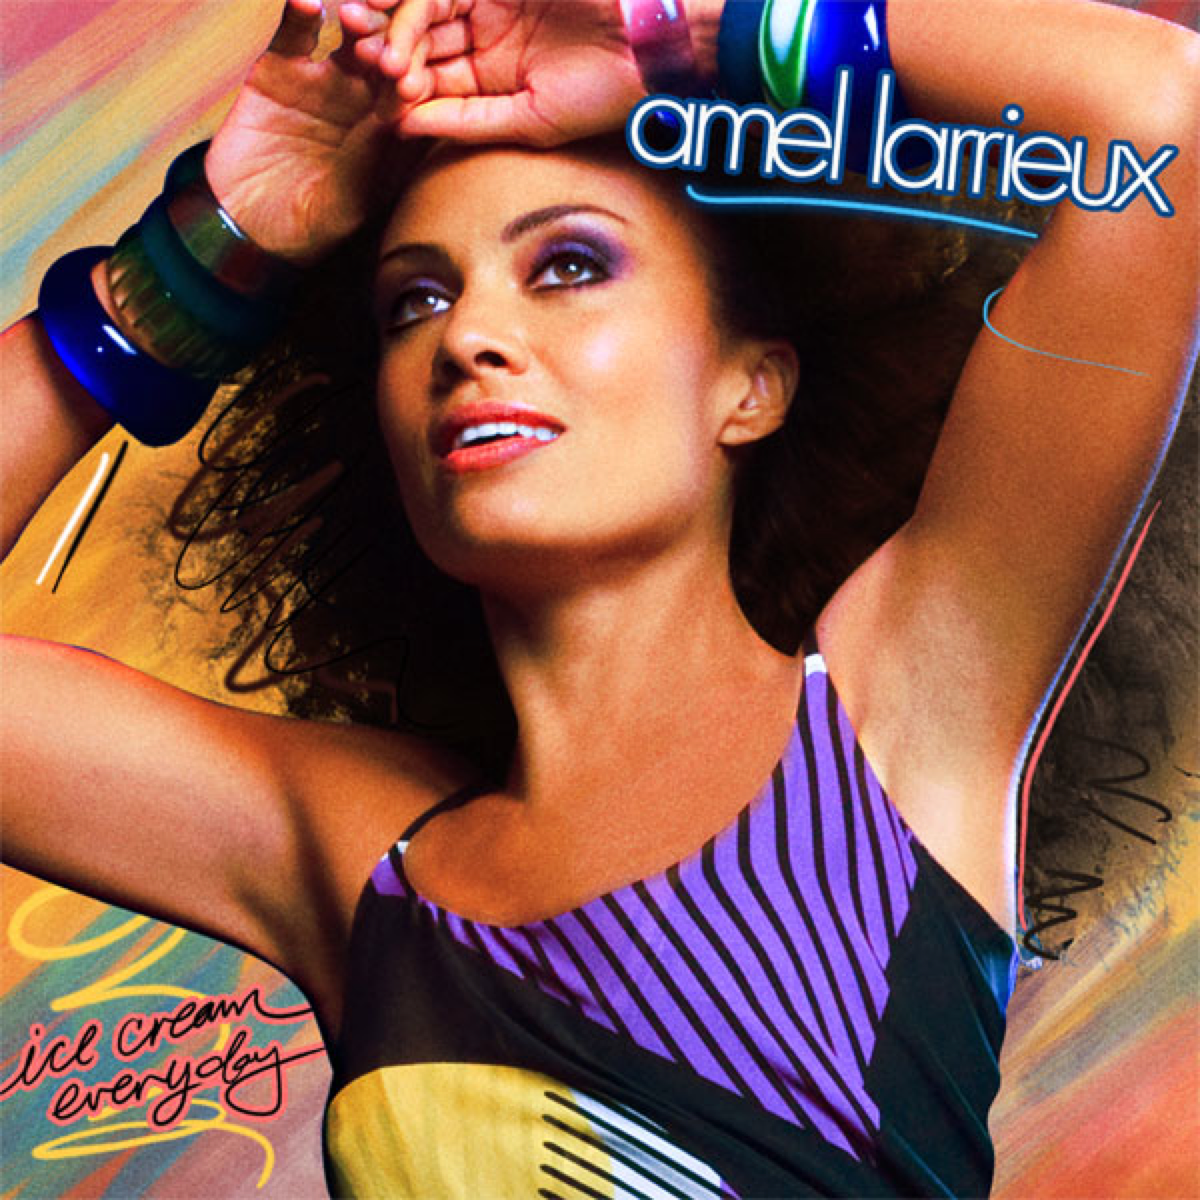 Amel Larrieux Ice Cream Everyday